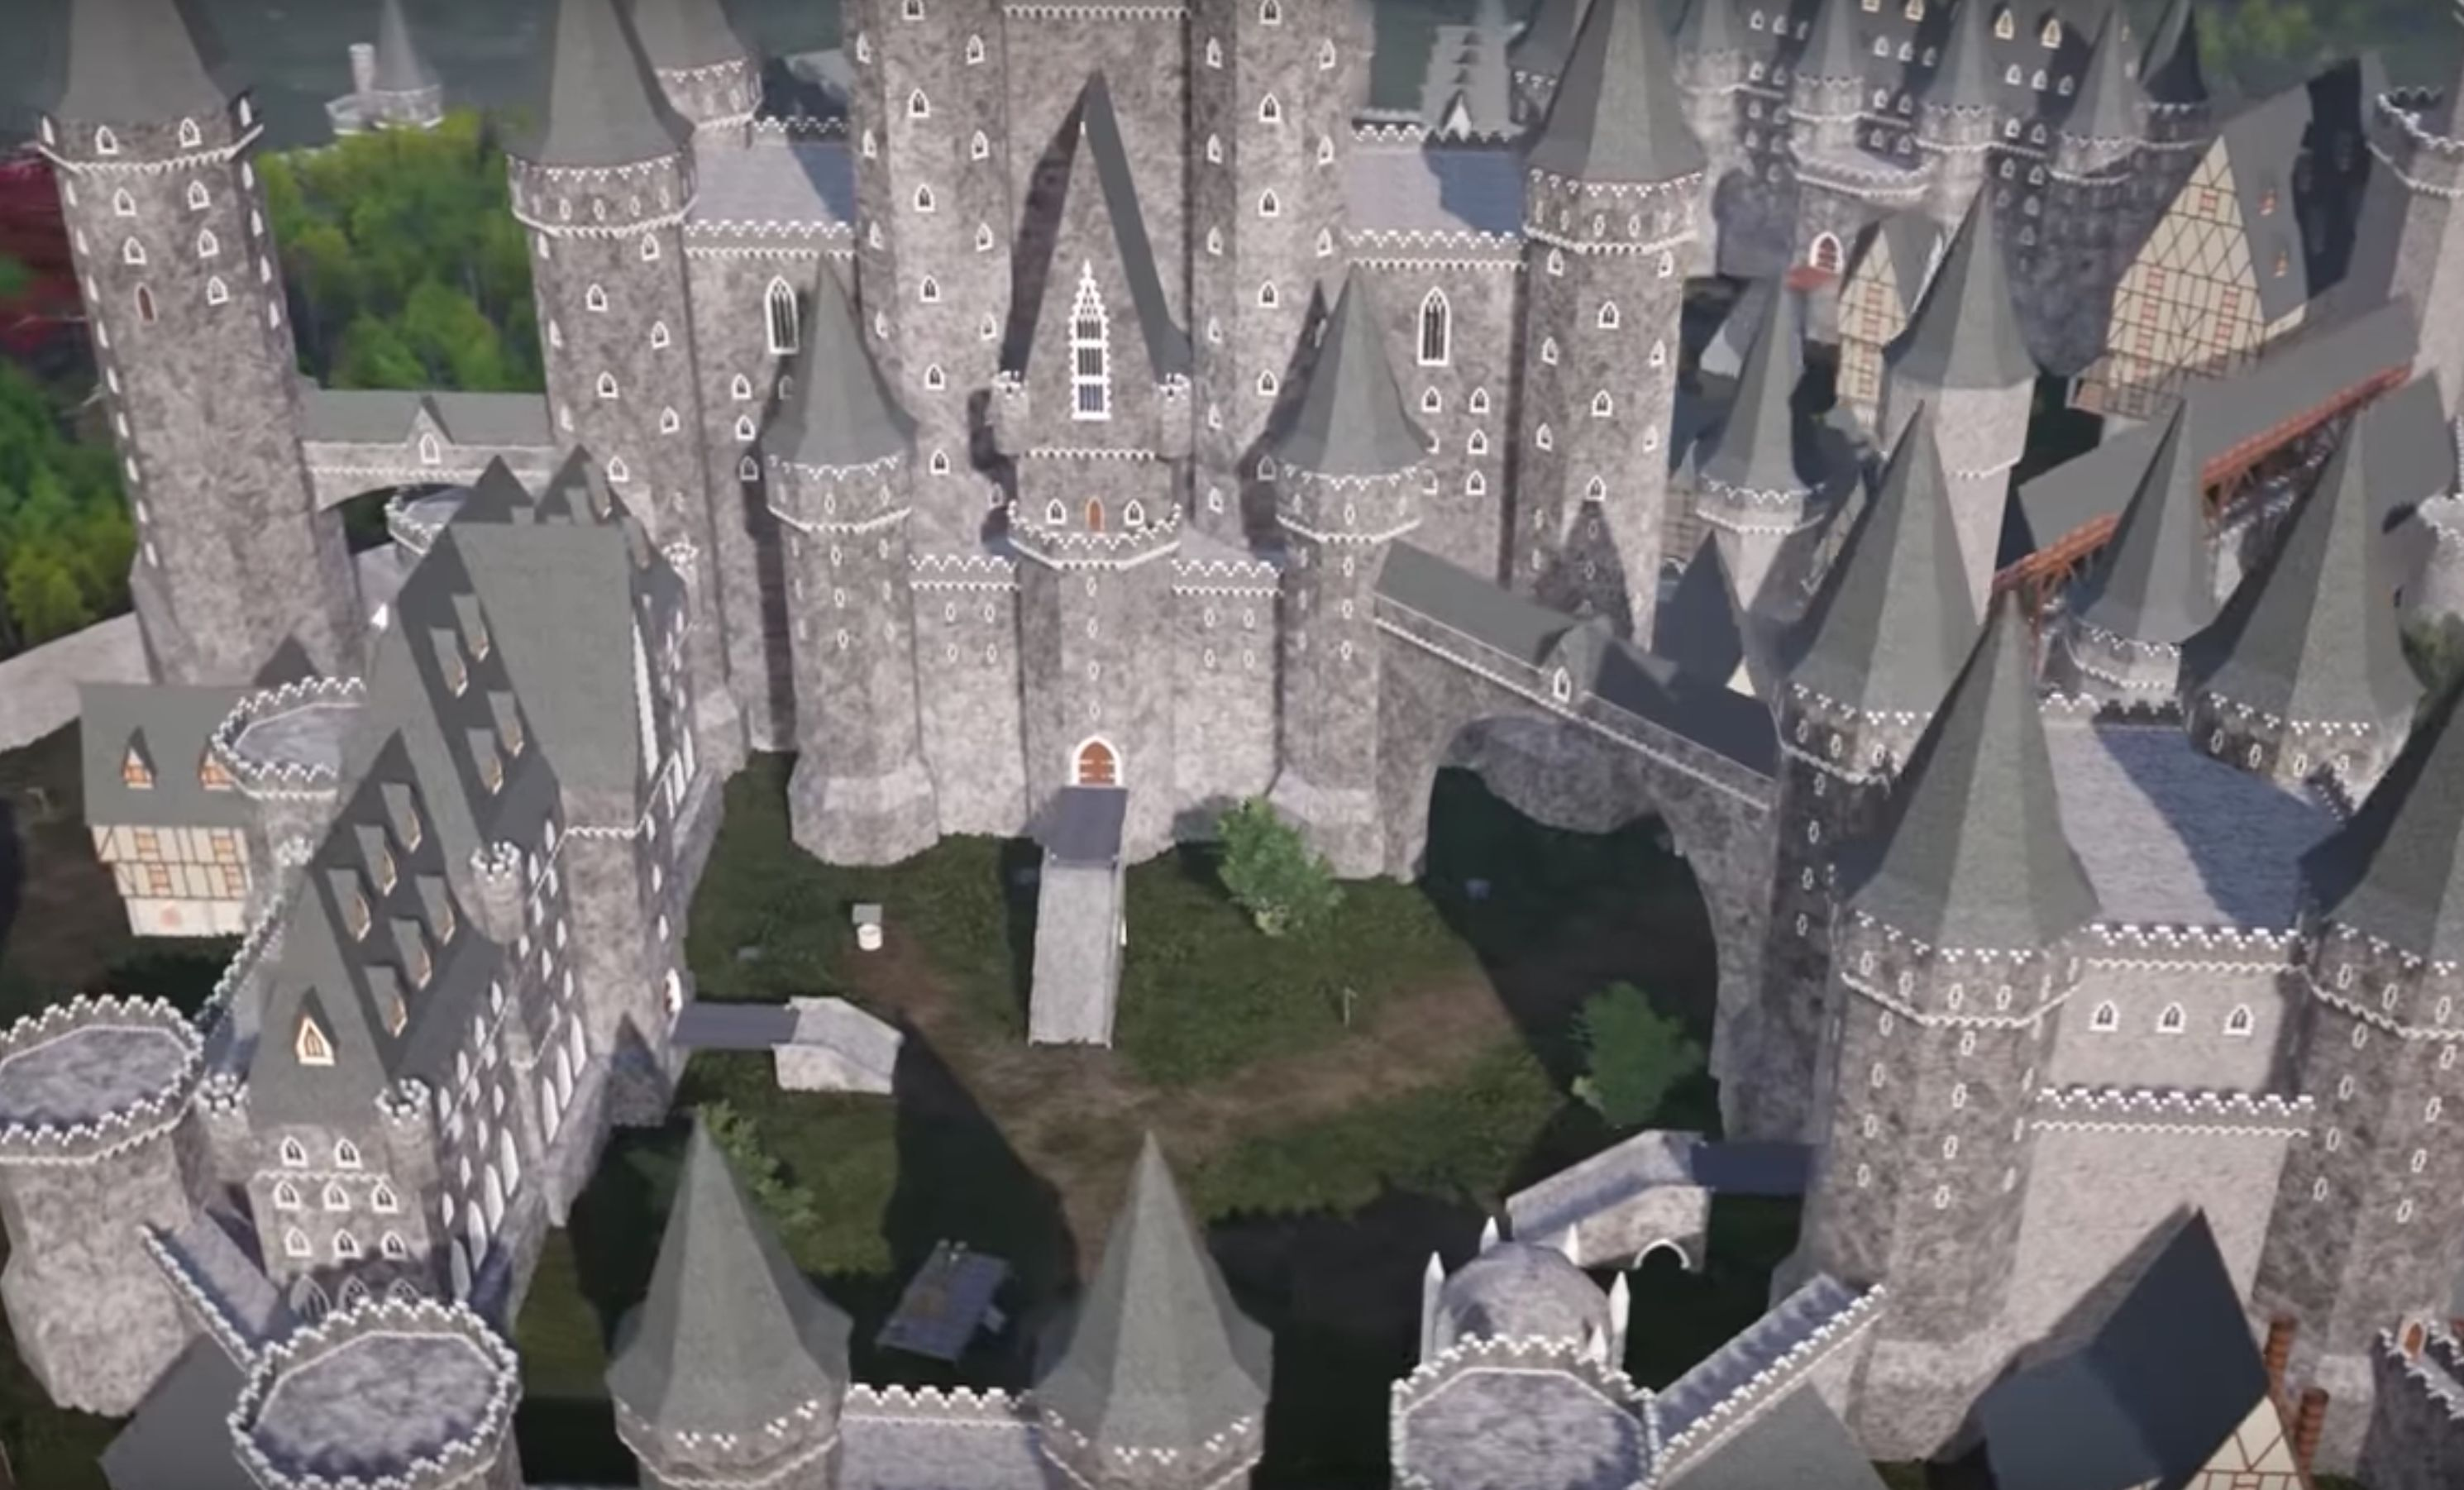 Take a video tour of a book-accurate model of Winterfell